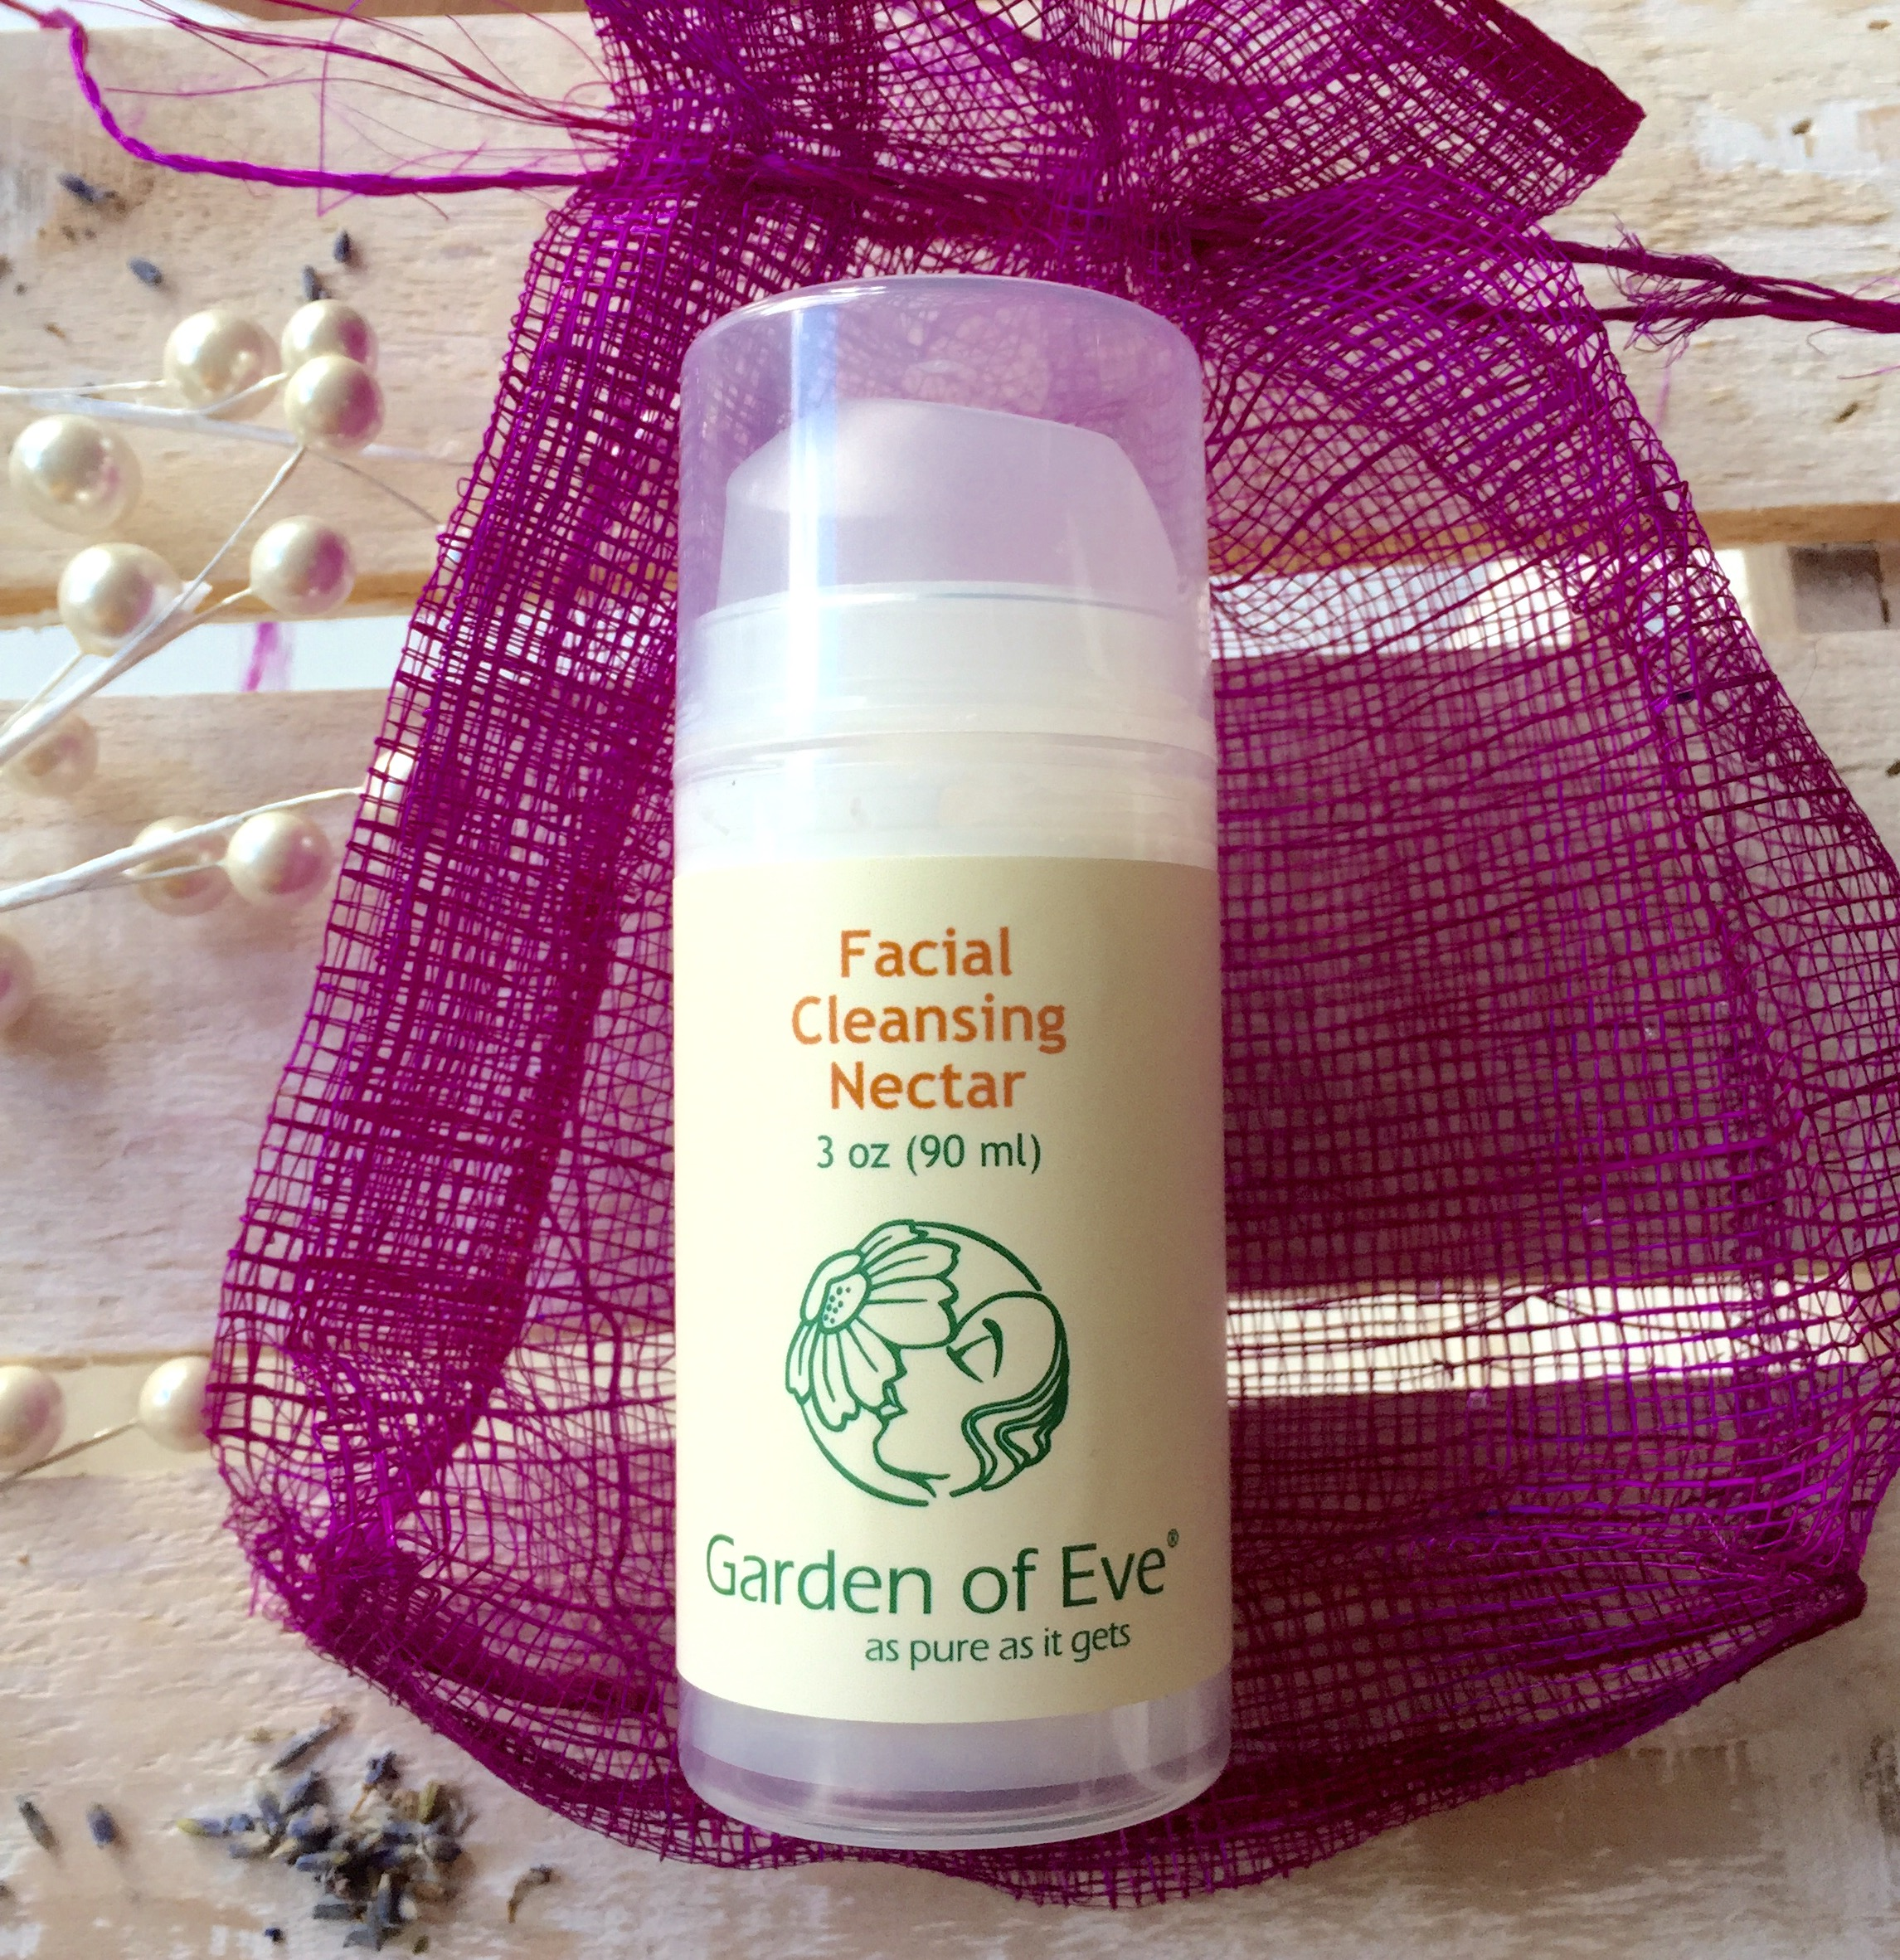 Suggest you Of eve skin care facial cleansing nectar you tell